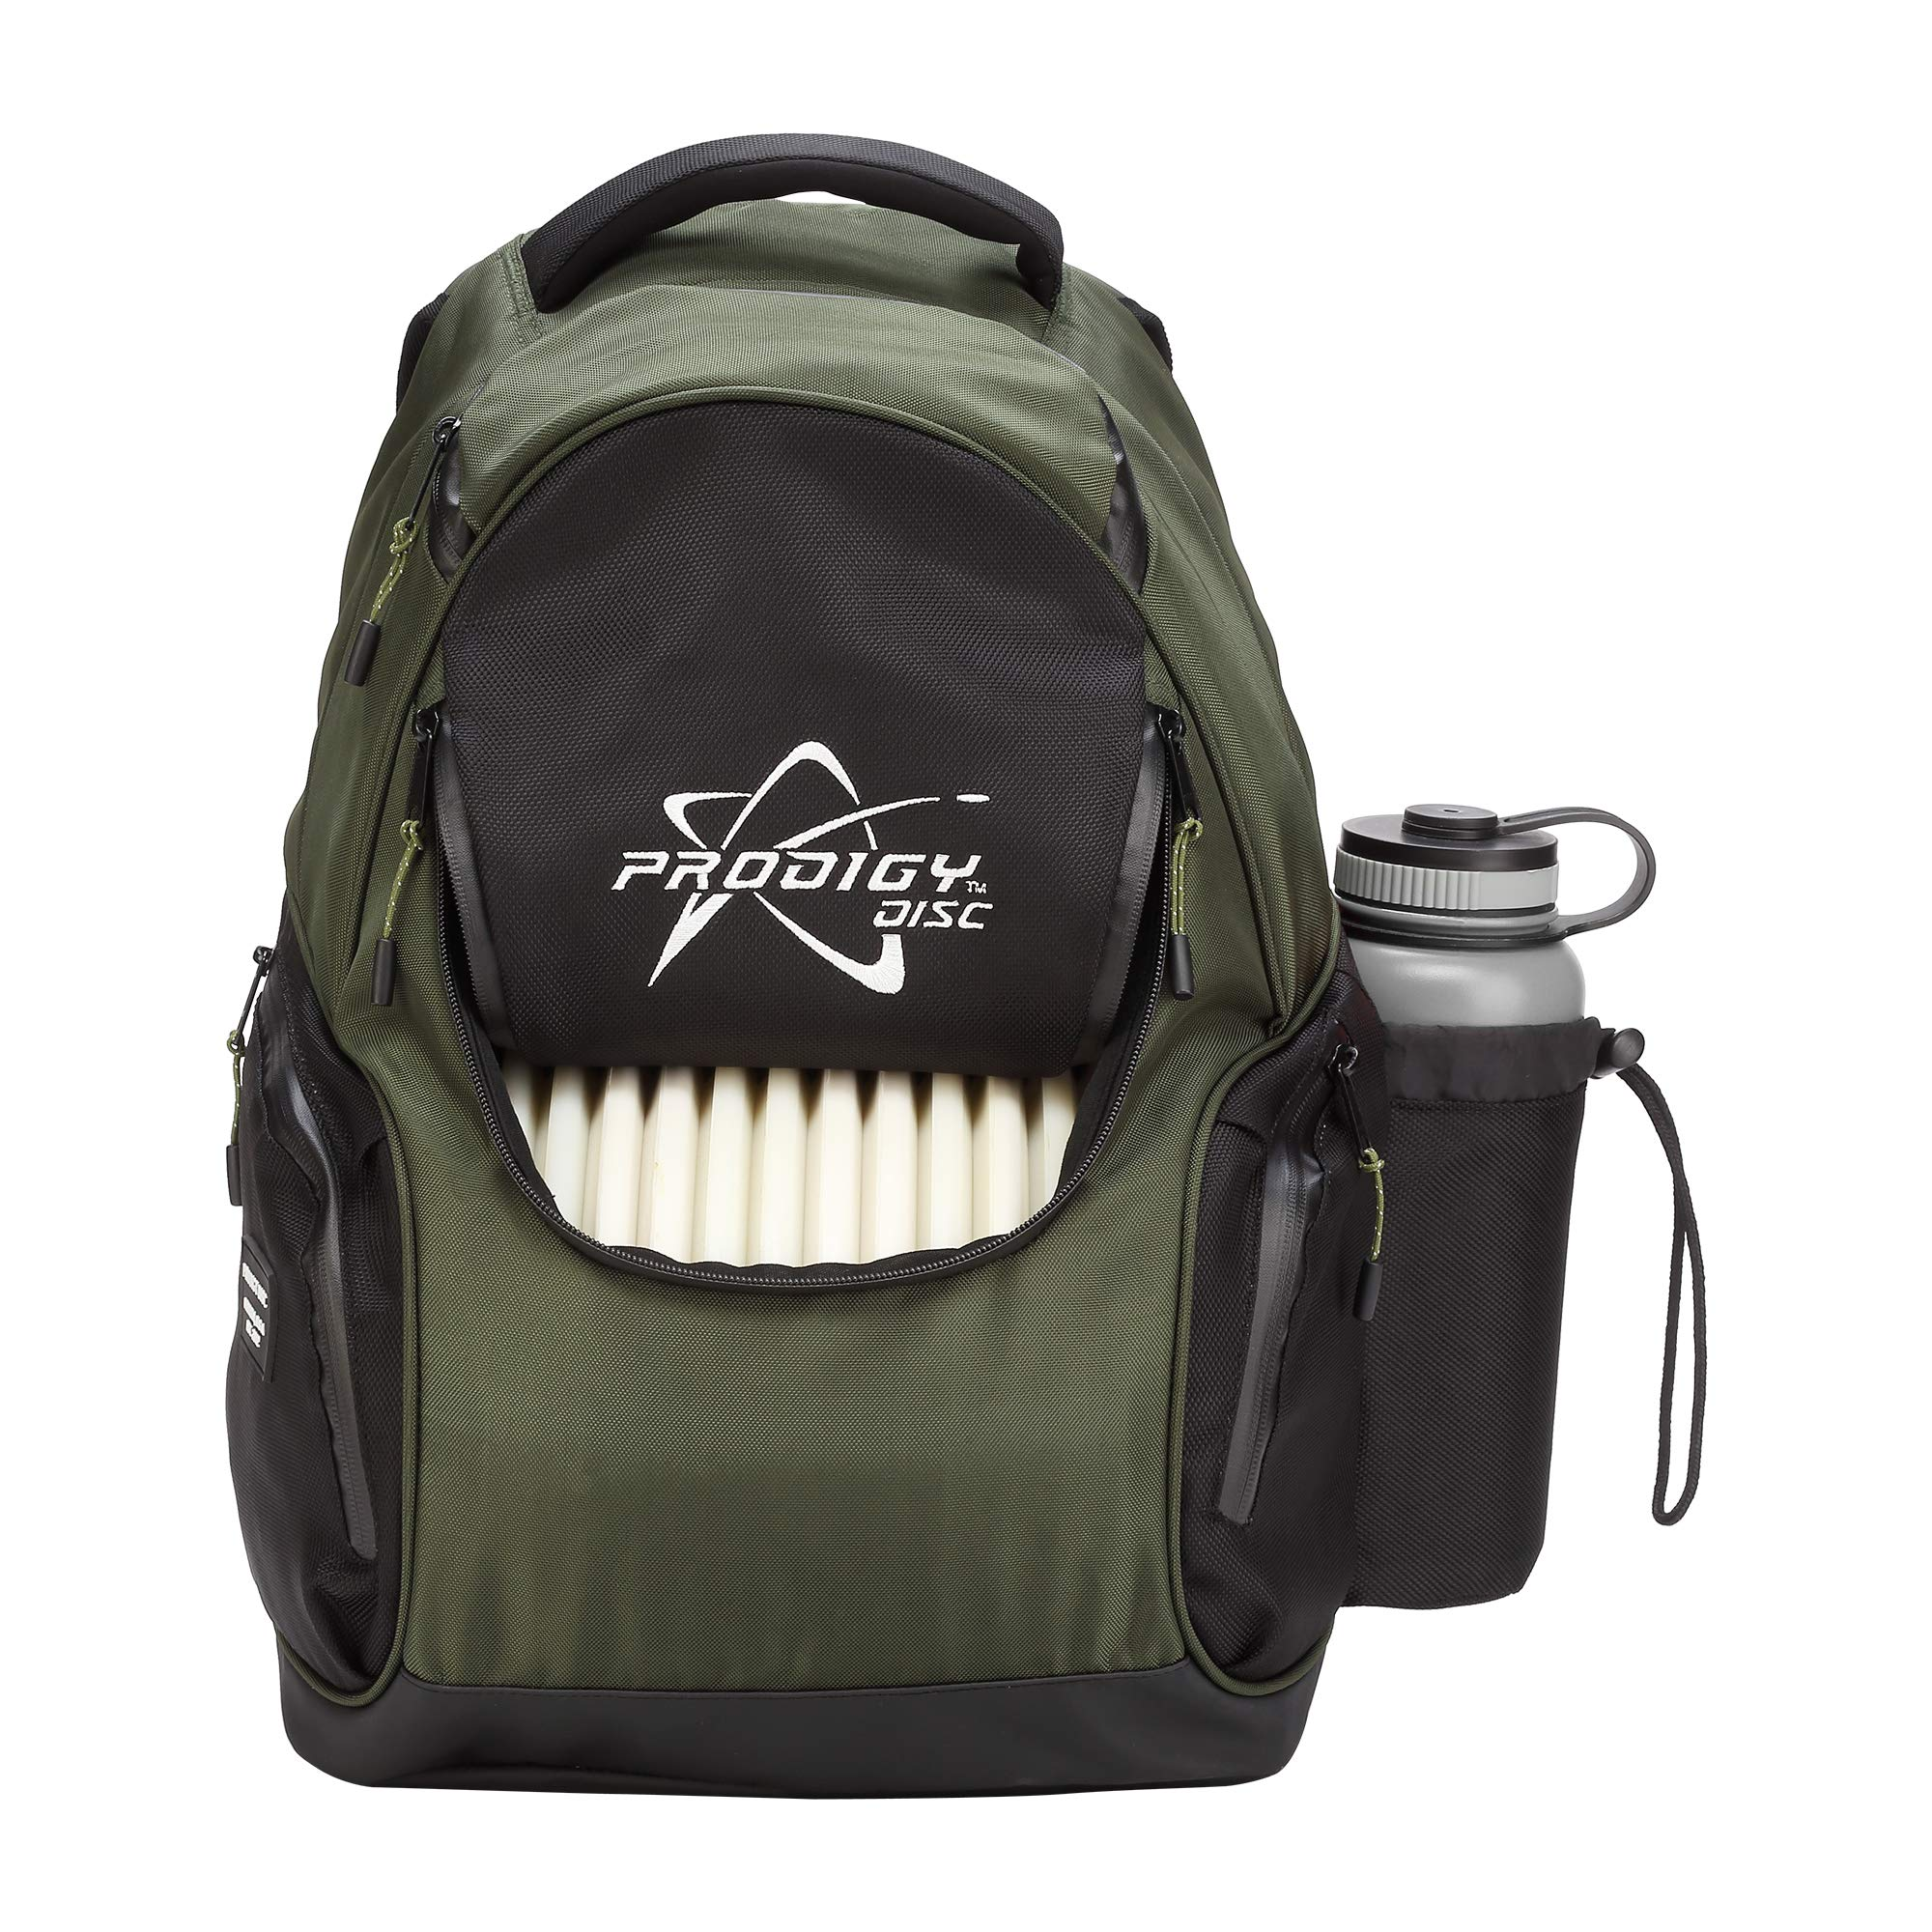 Prodigy Disc BP-3 V2 Disc Golf Backpack - Fits 17 Discs - Beginner Friendly, Affordable (Green/Black) by Prodigy Disc (Image #3)